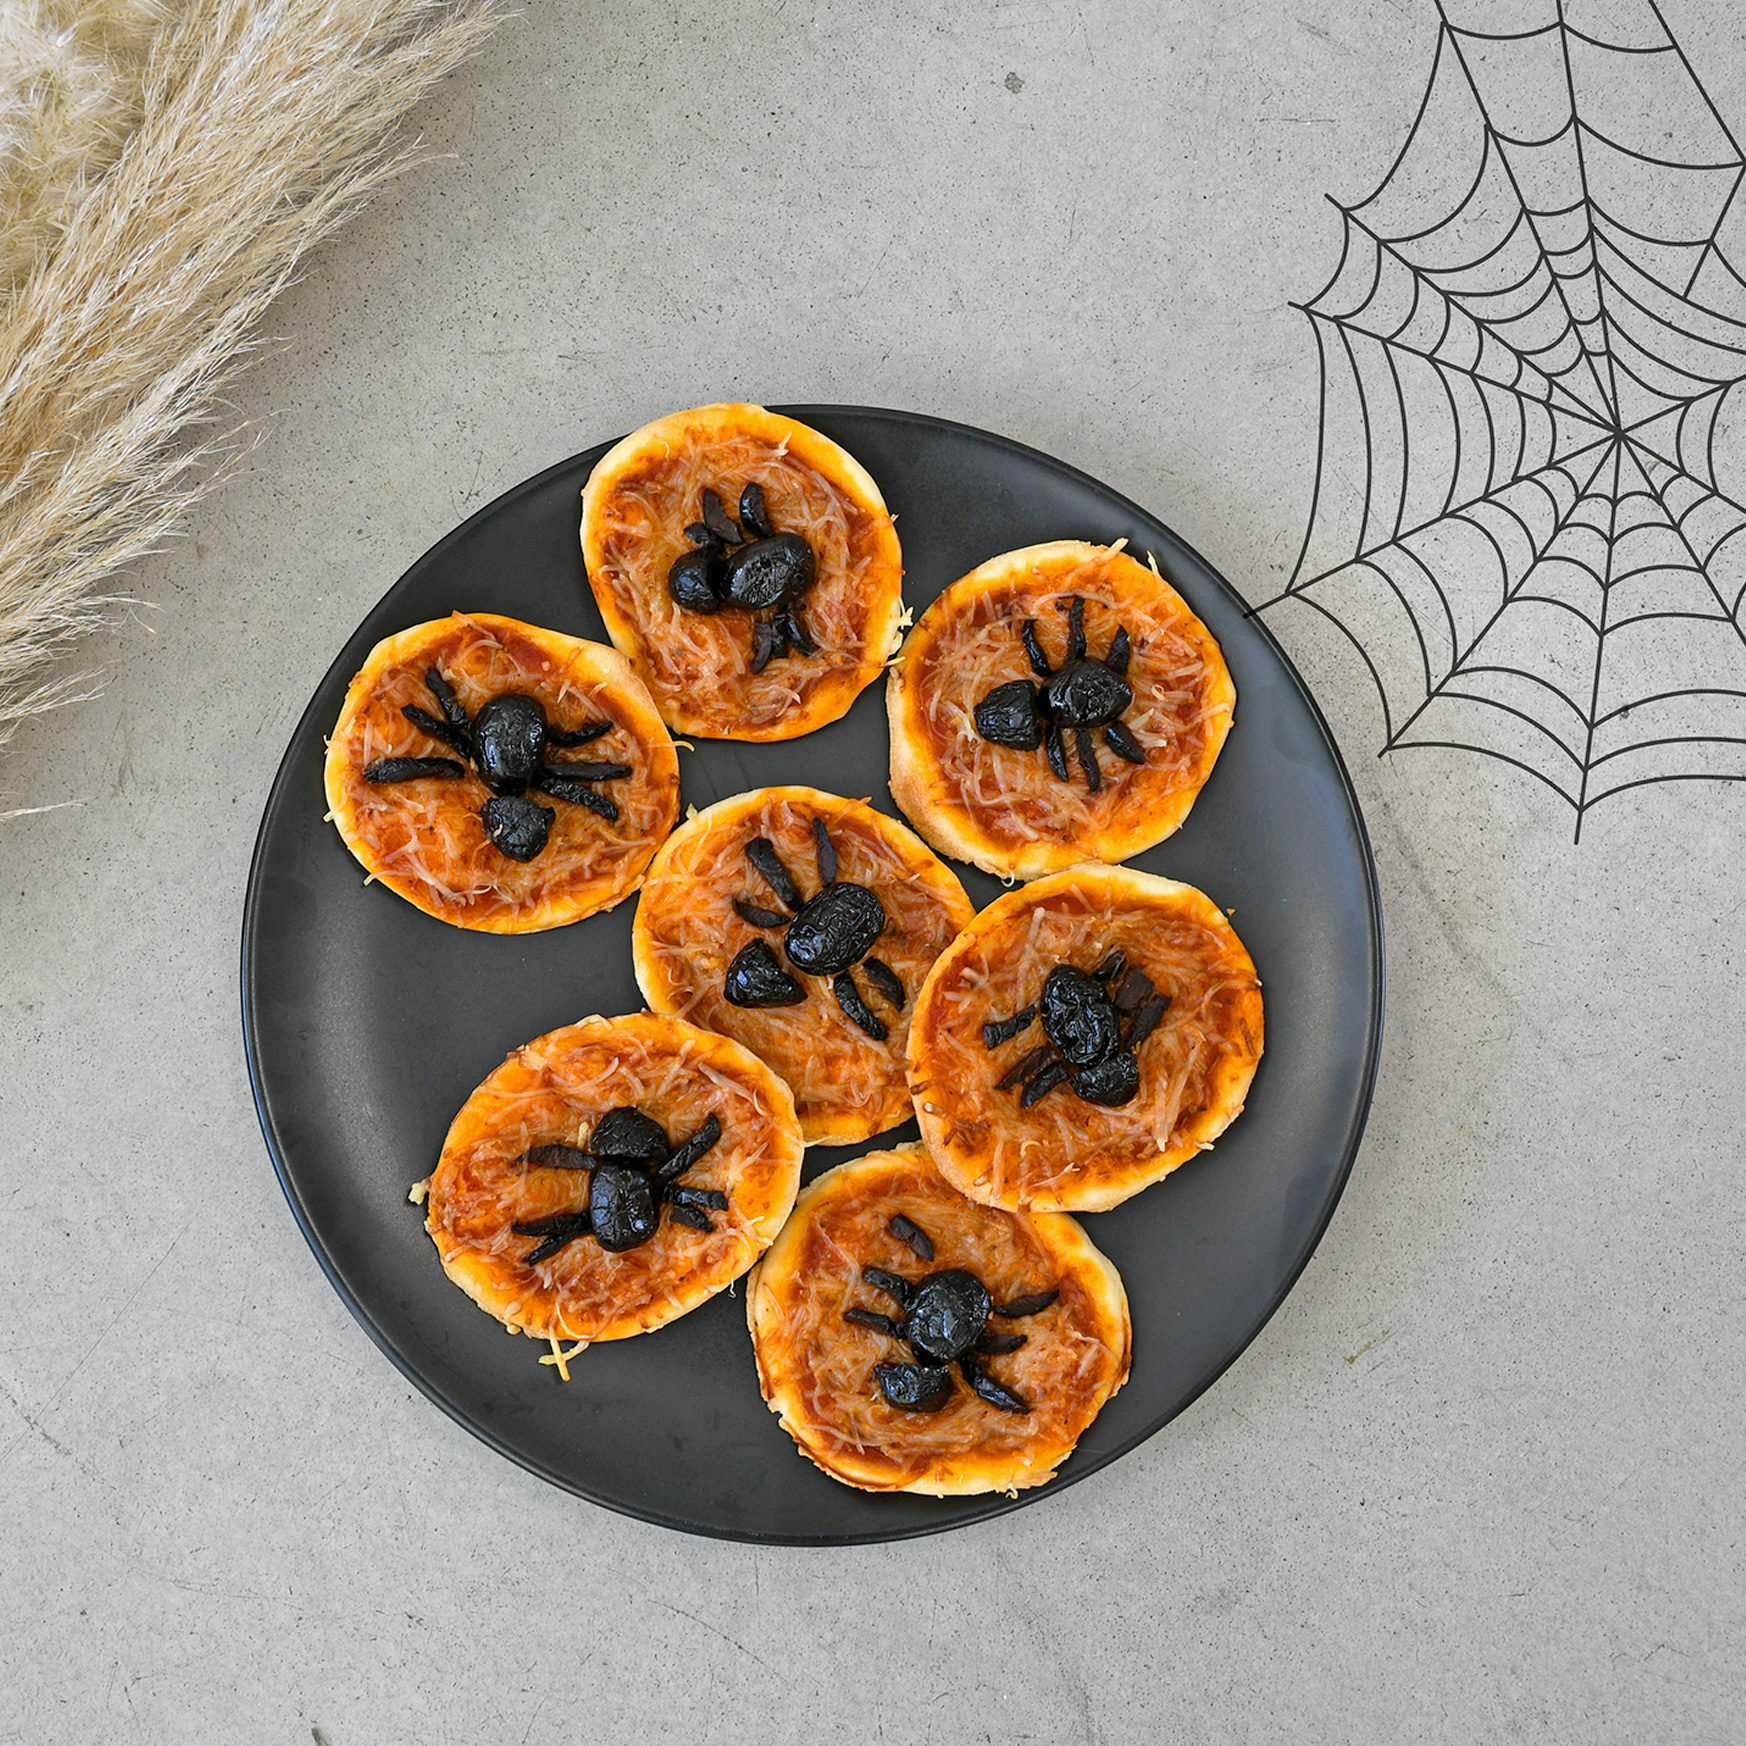 Surprise your children at the aperitif hour with these spiders mini pizzas for